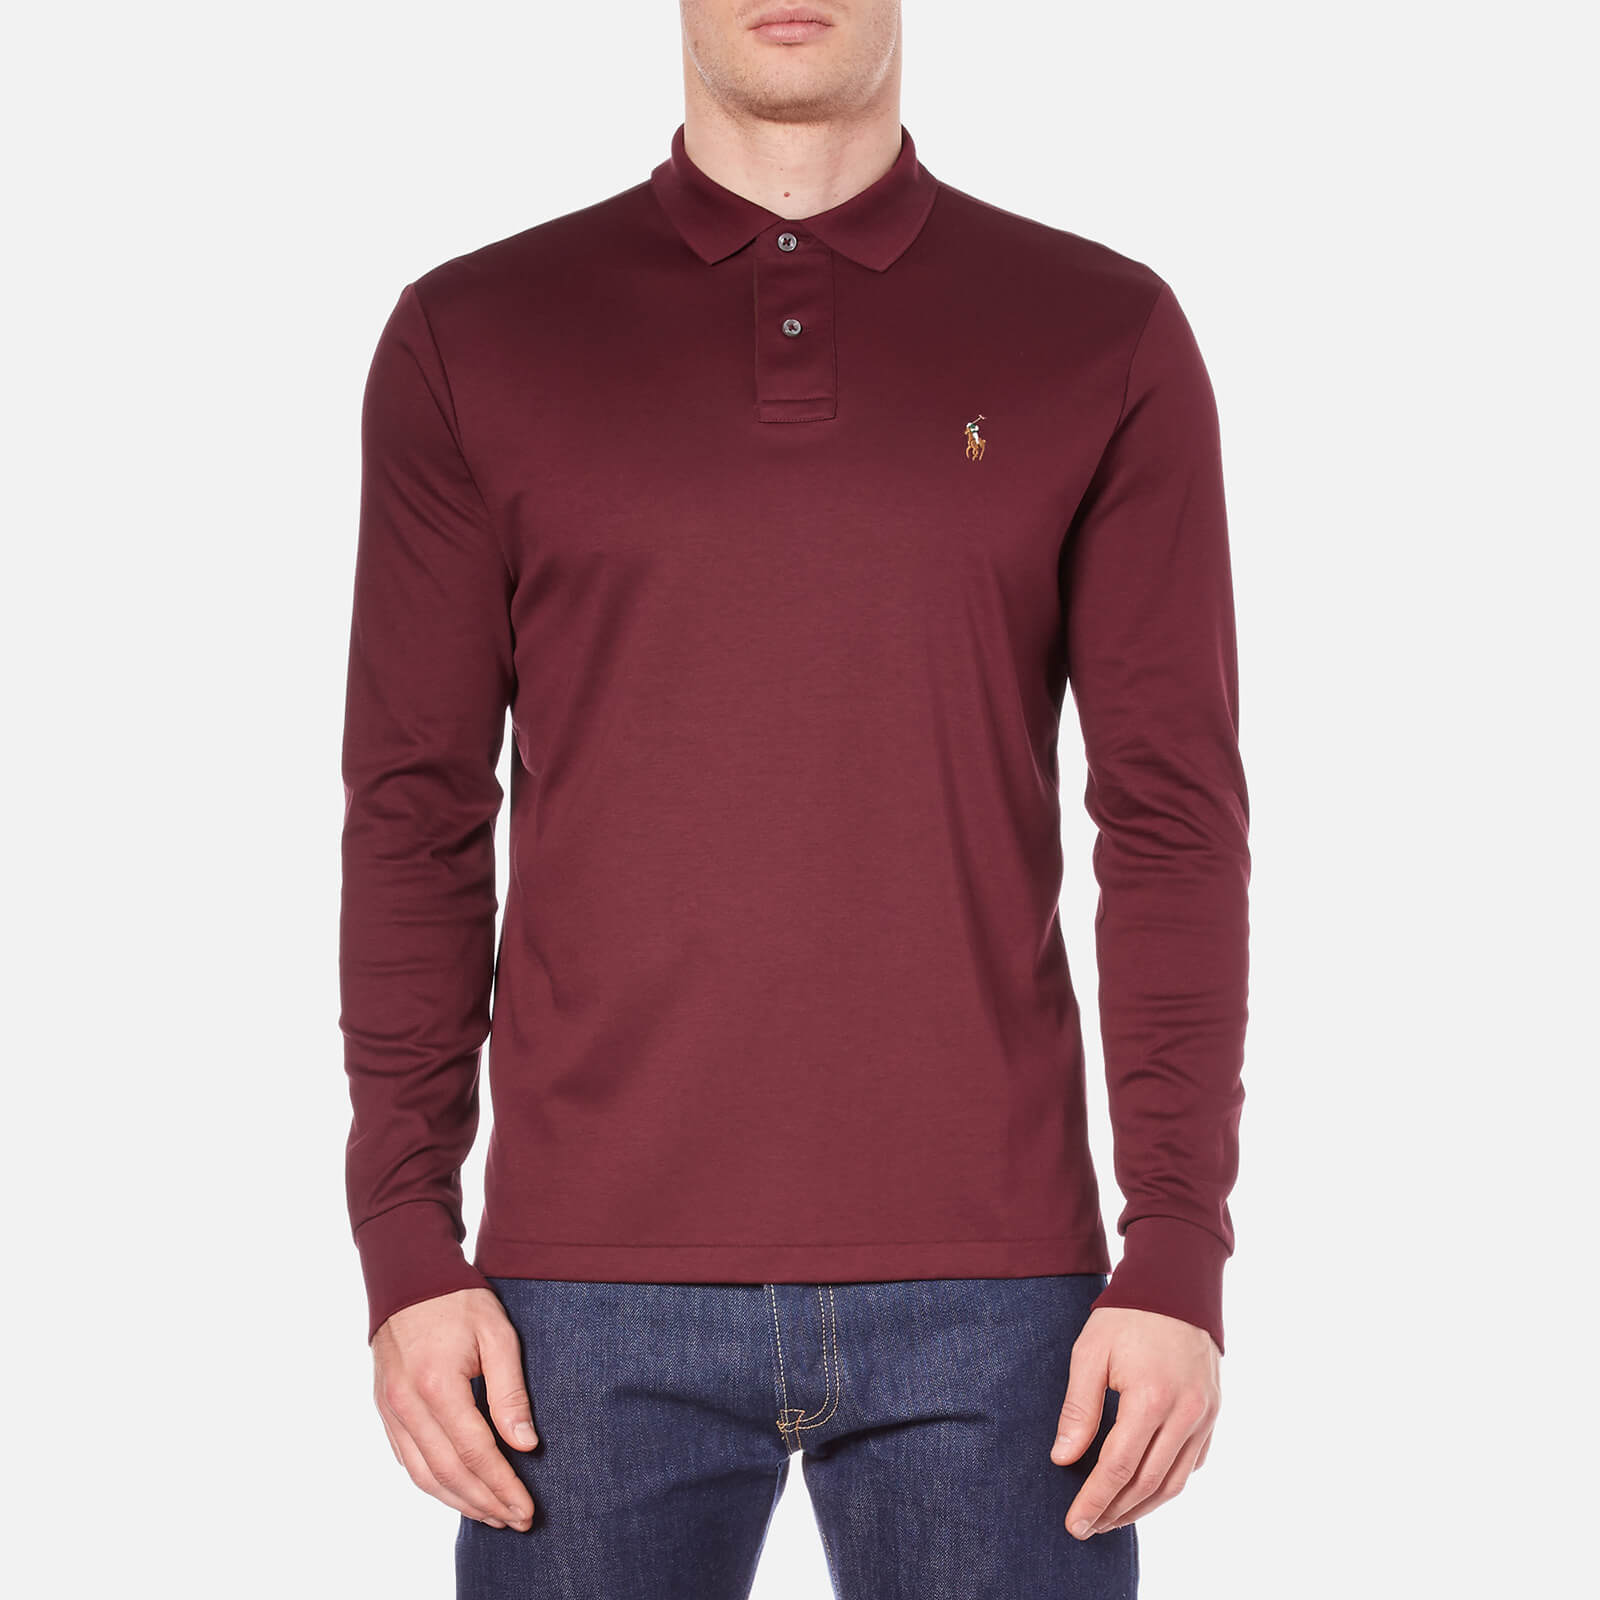 543eb7f9d87f Polo Ralph Lauren Men's Long Sleeve Custom Fit Polo Shirt - Classic Wine -  Free UK Delivery over £50